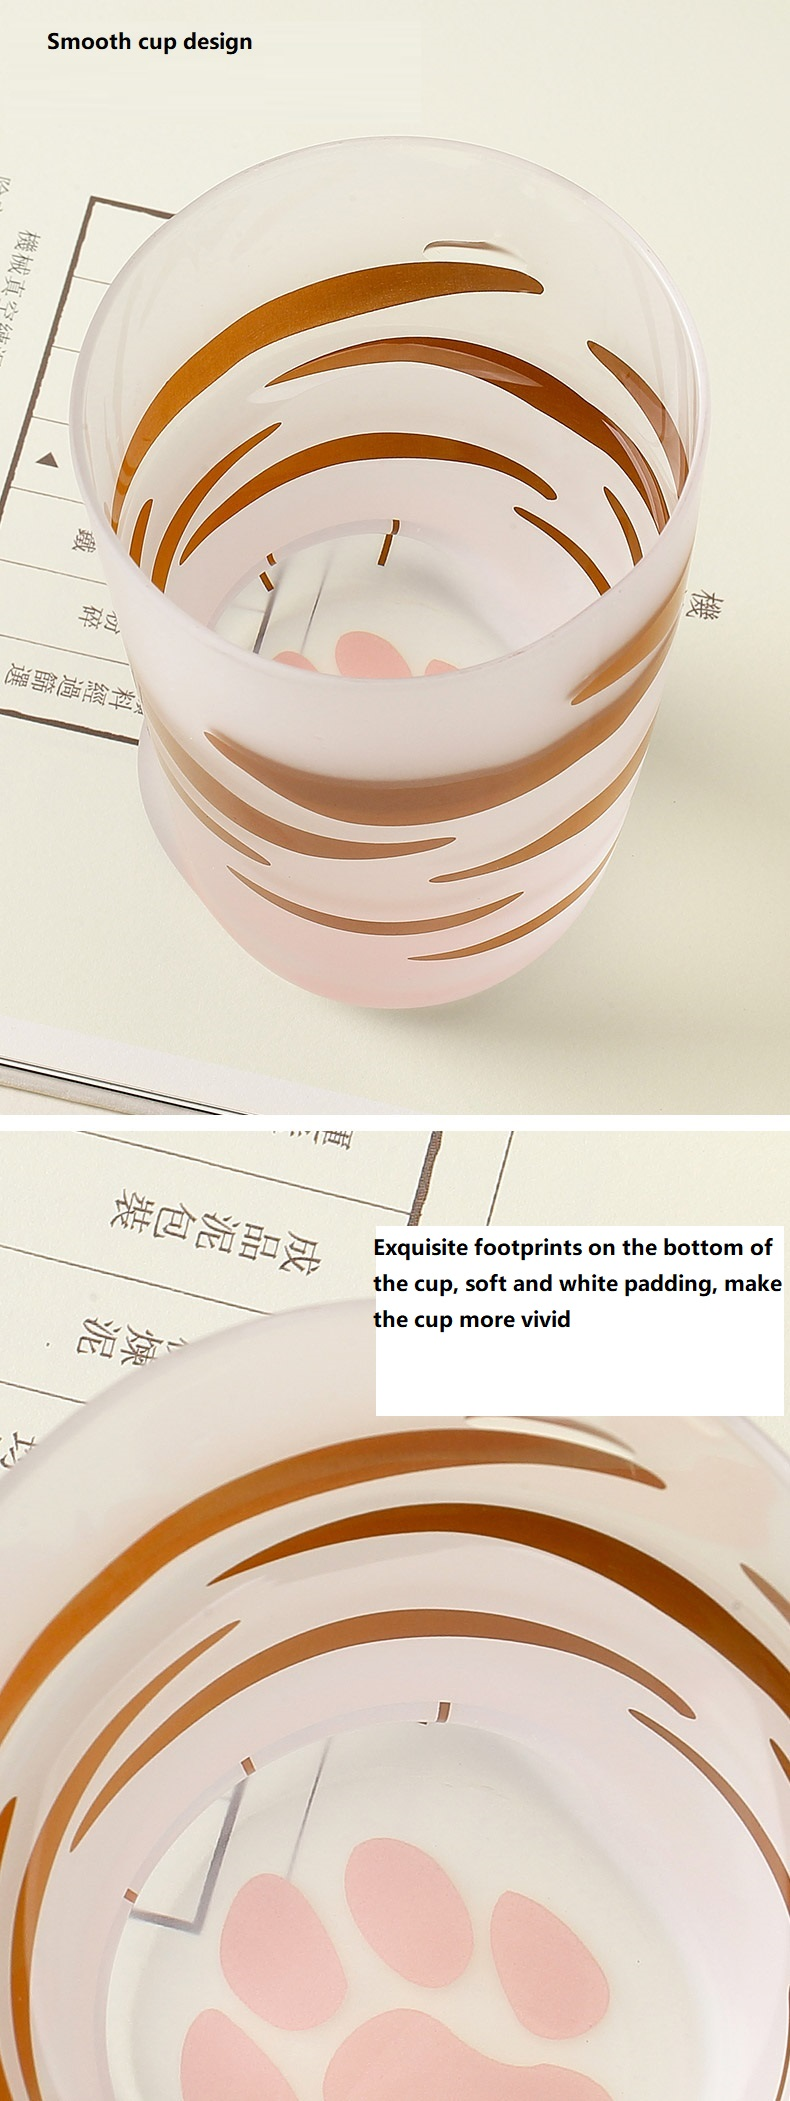 H058310a68ead409ab89b3836cedae9ffY - 350ml Mug Heat-resistant Glass Cat Cup Tiger Paws Office Matte Cat Paws Creative Milk Coffee Cup Cute Children Drink Bottle